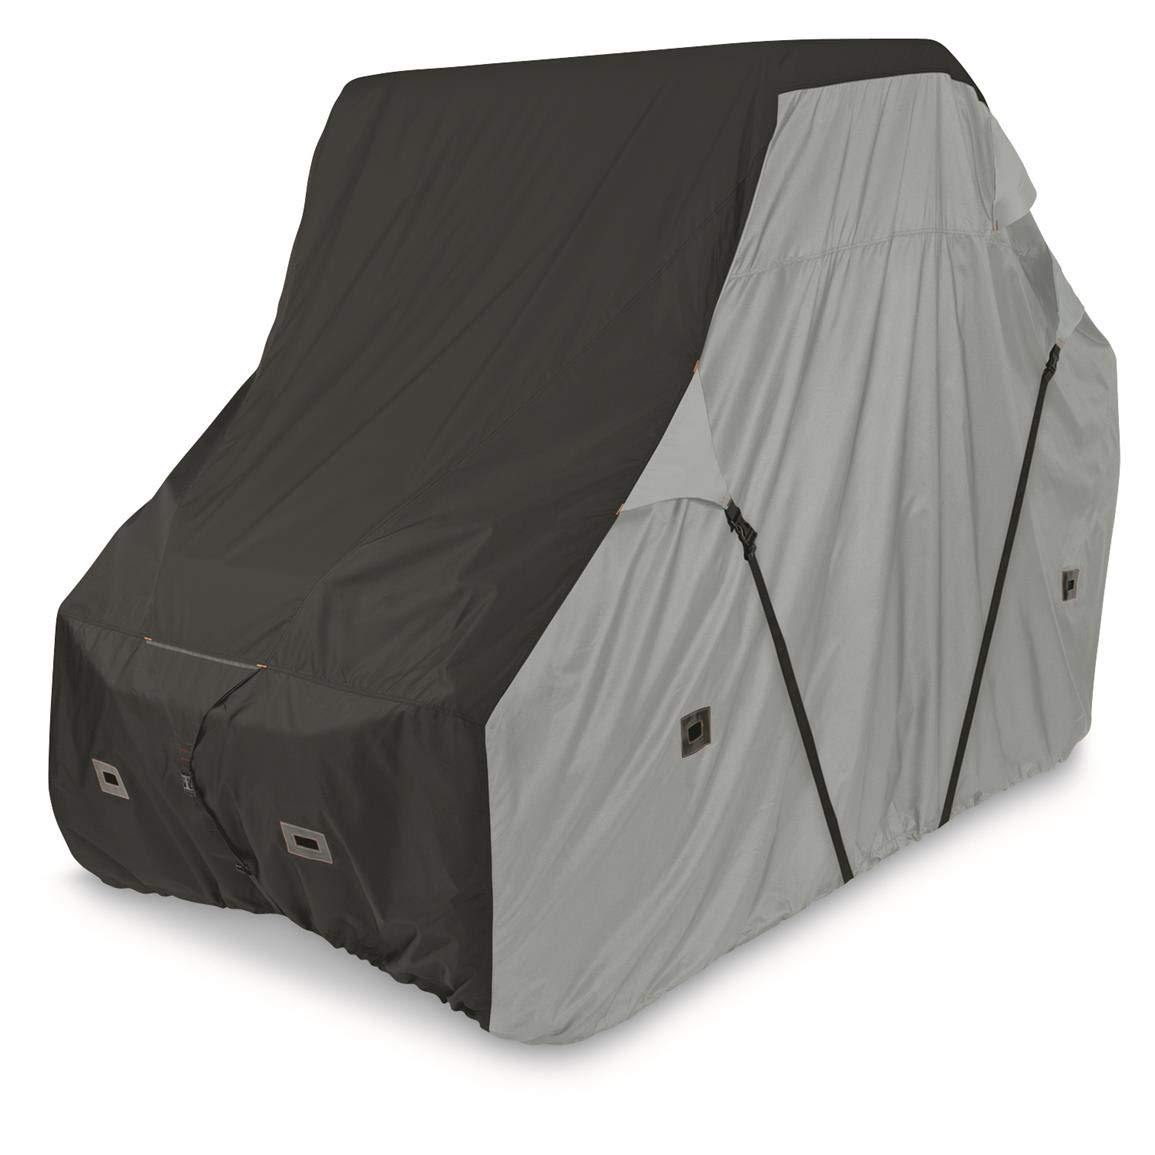 Classic Accessories 18-065-053801-0 UTV Deluxe Storage Covers XL